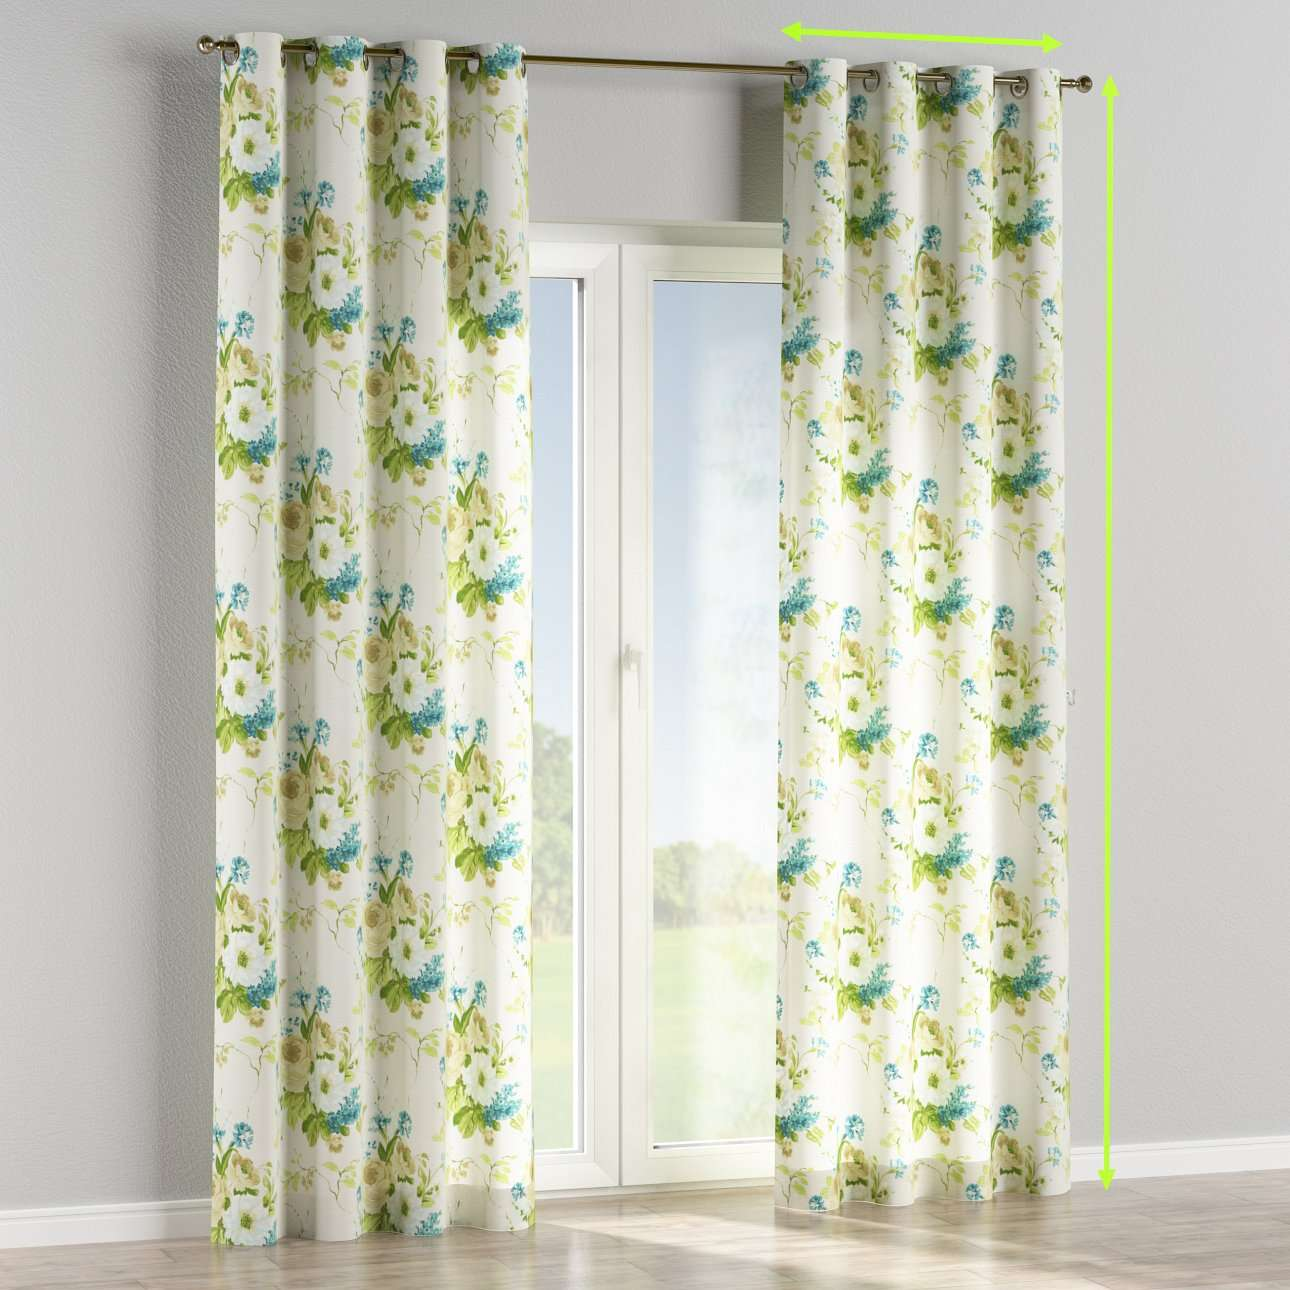 Eyelet curtains in collection Mirella, fabric: 141-15